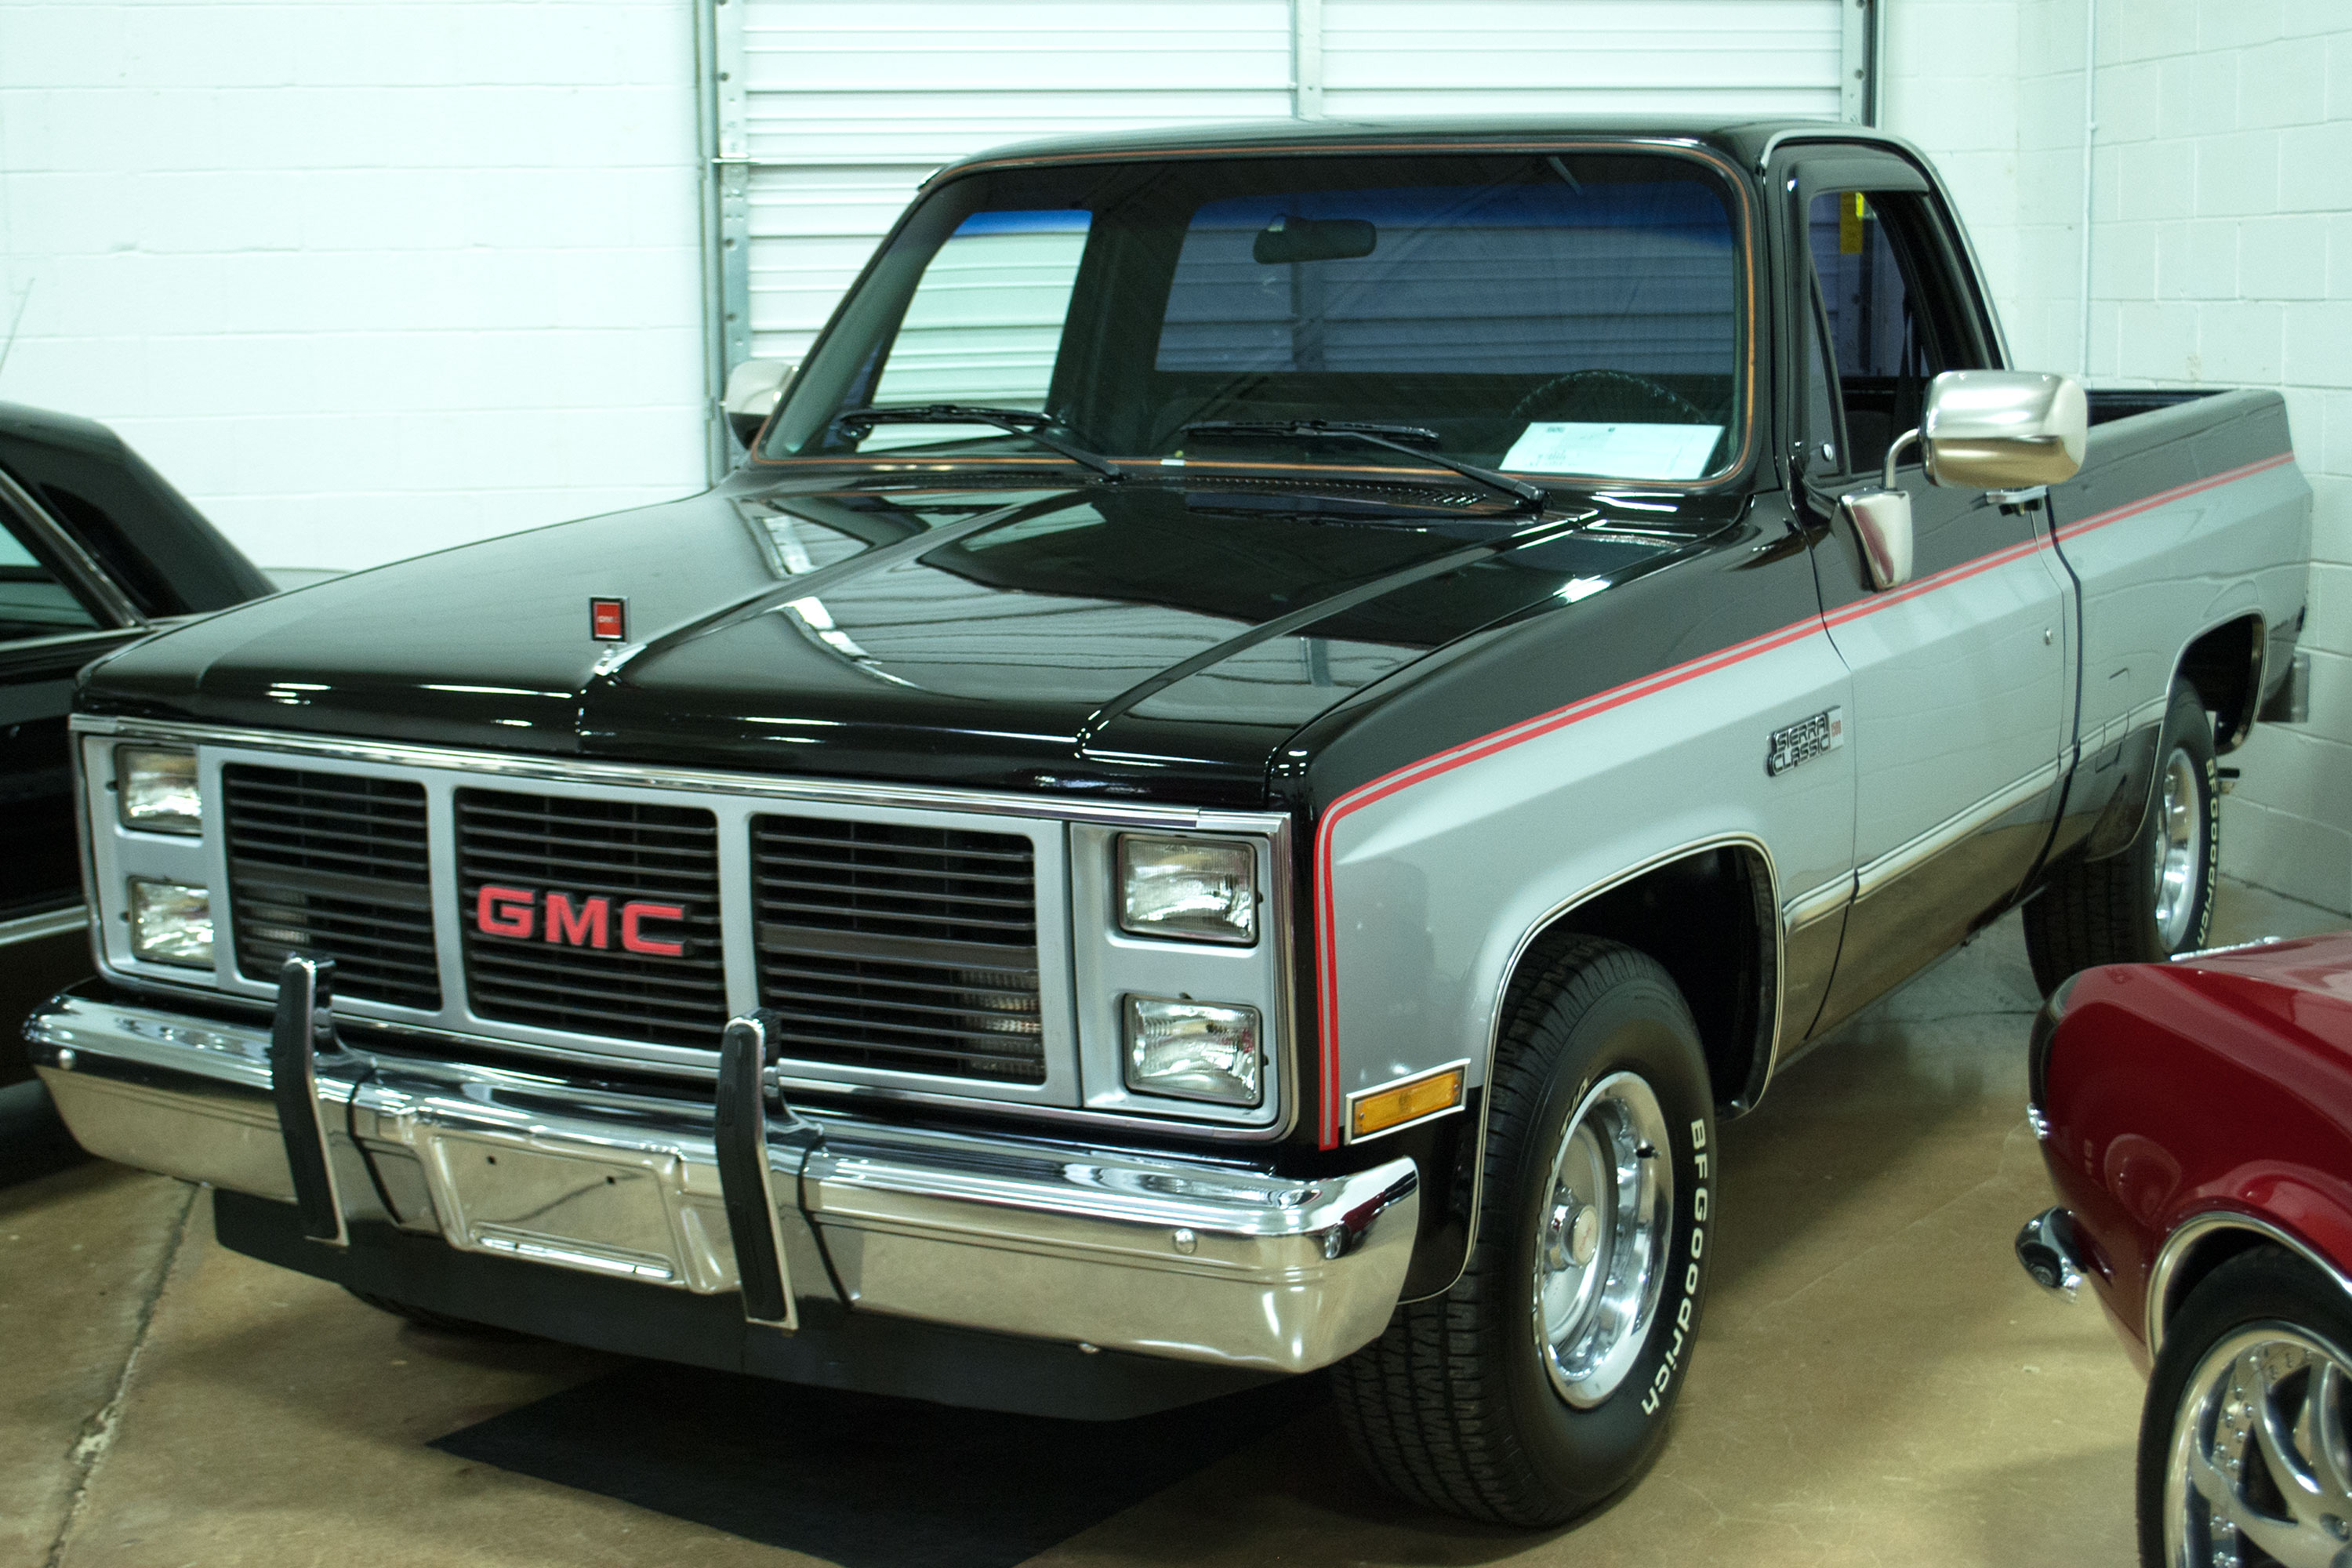 American Car Center Memphis Tn >> 1986 GMC Sierra | Art & Speed Classic Car Gallery in Memphis, TN